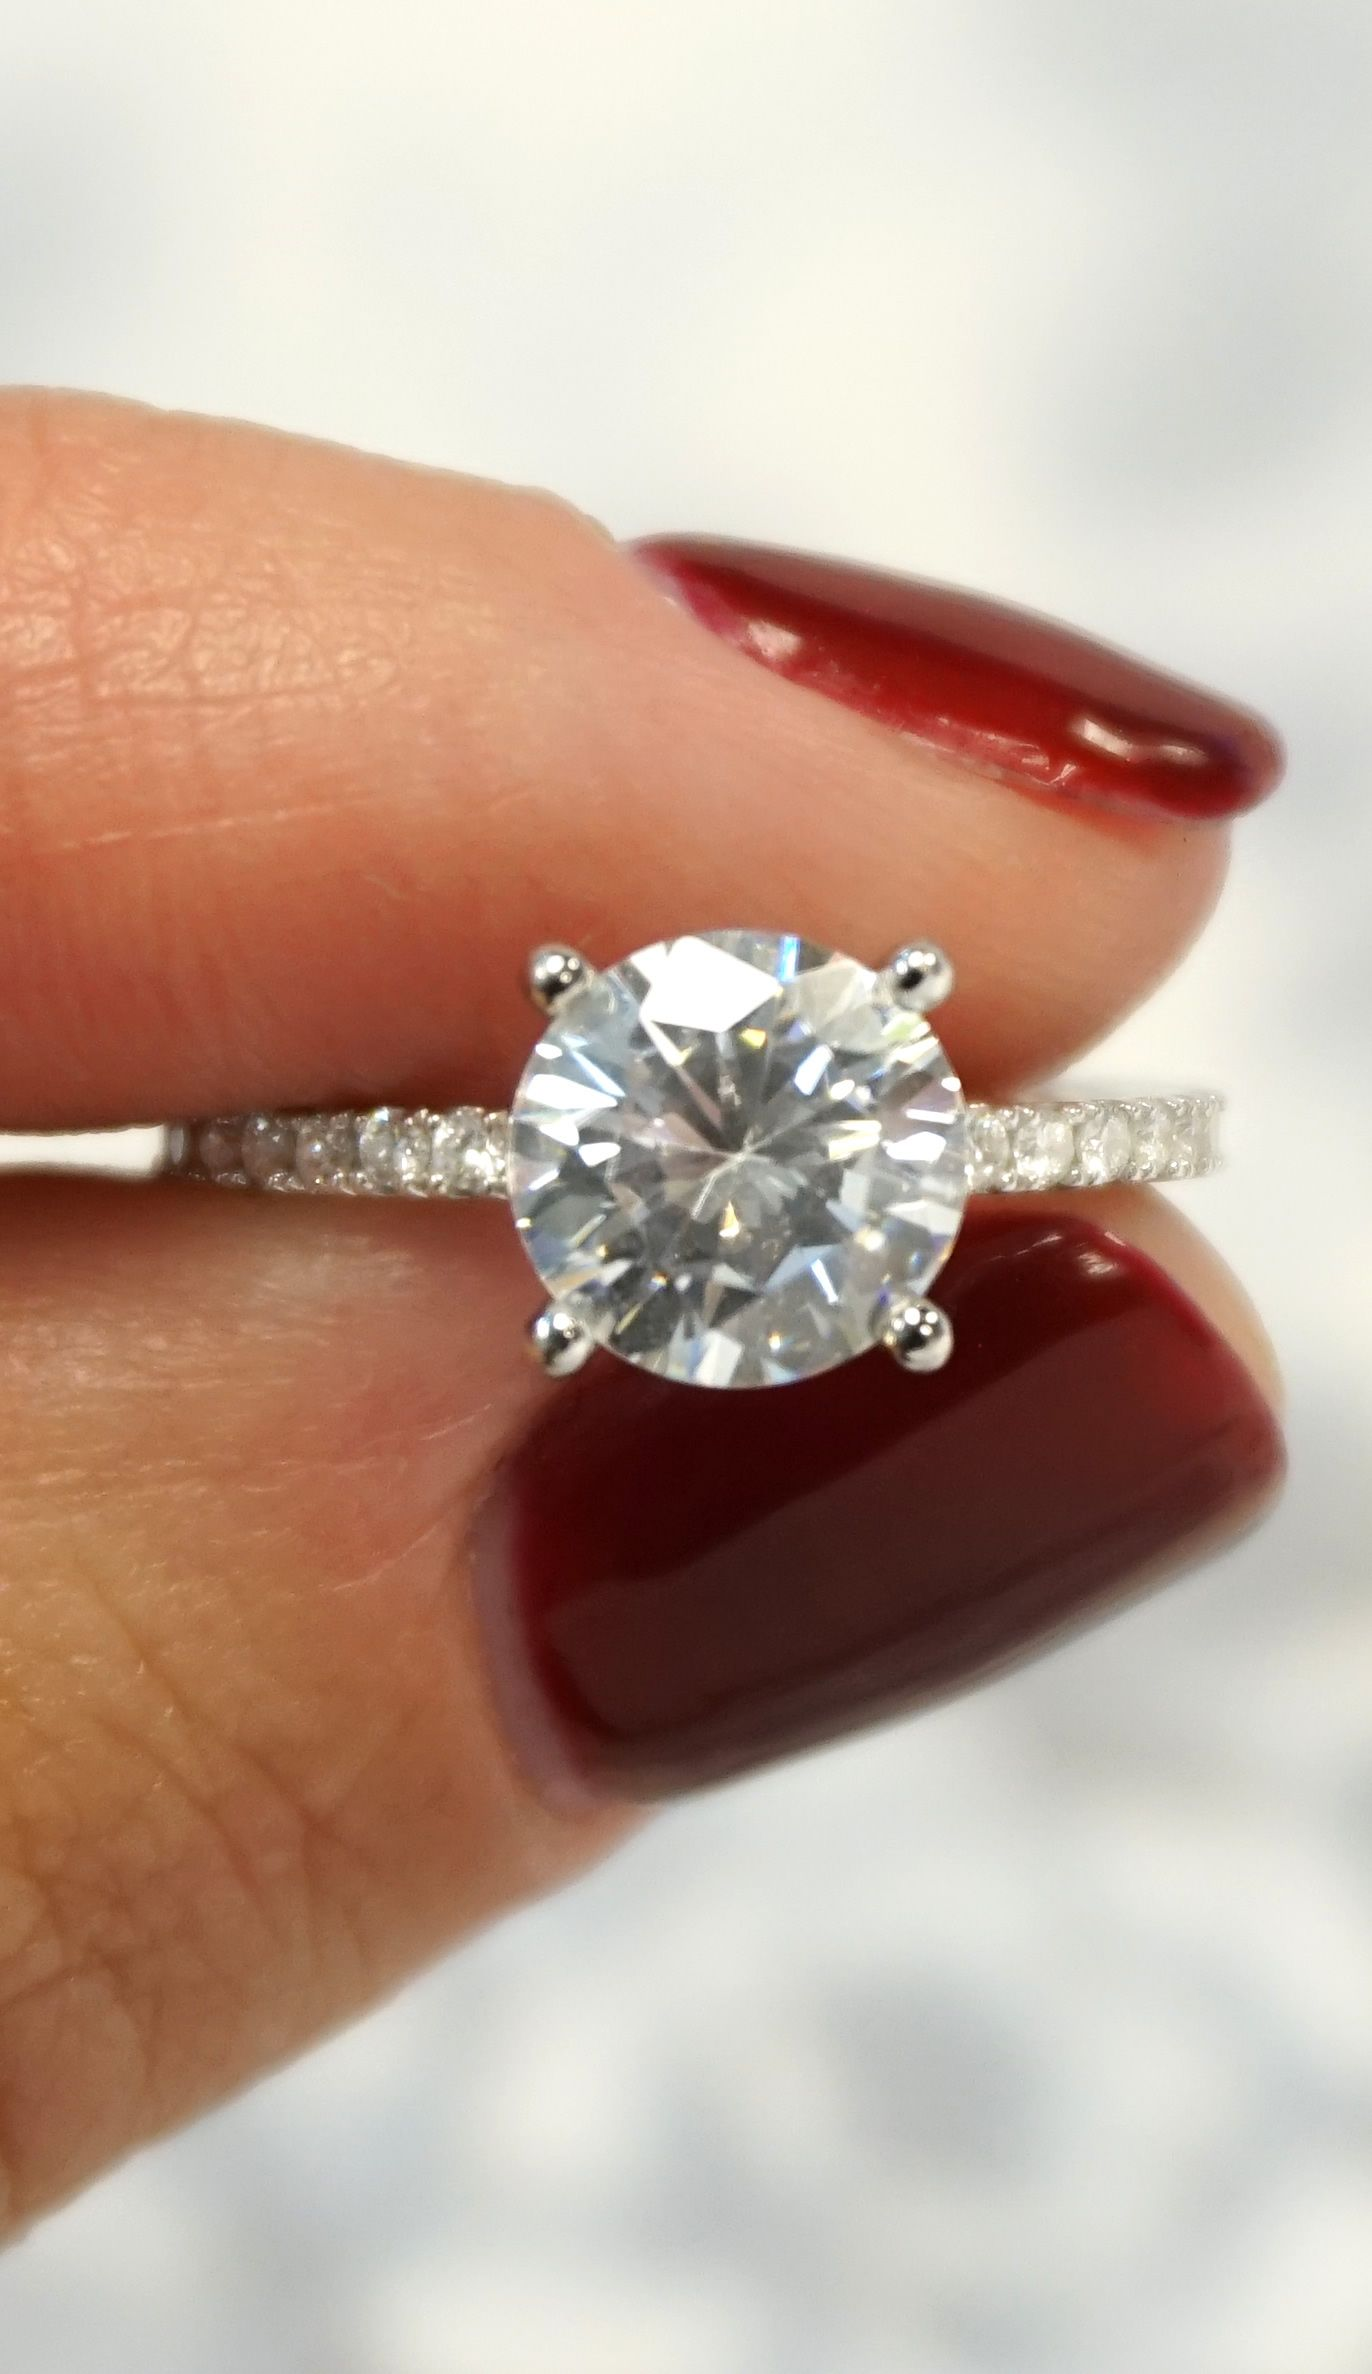 Design Your Own Classic Timeless Engagement Ring So That It Is